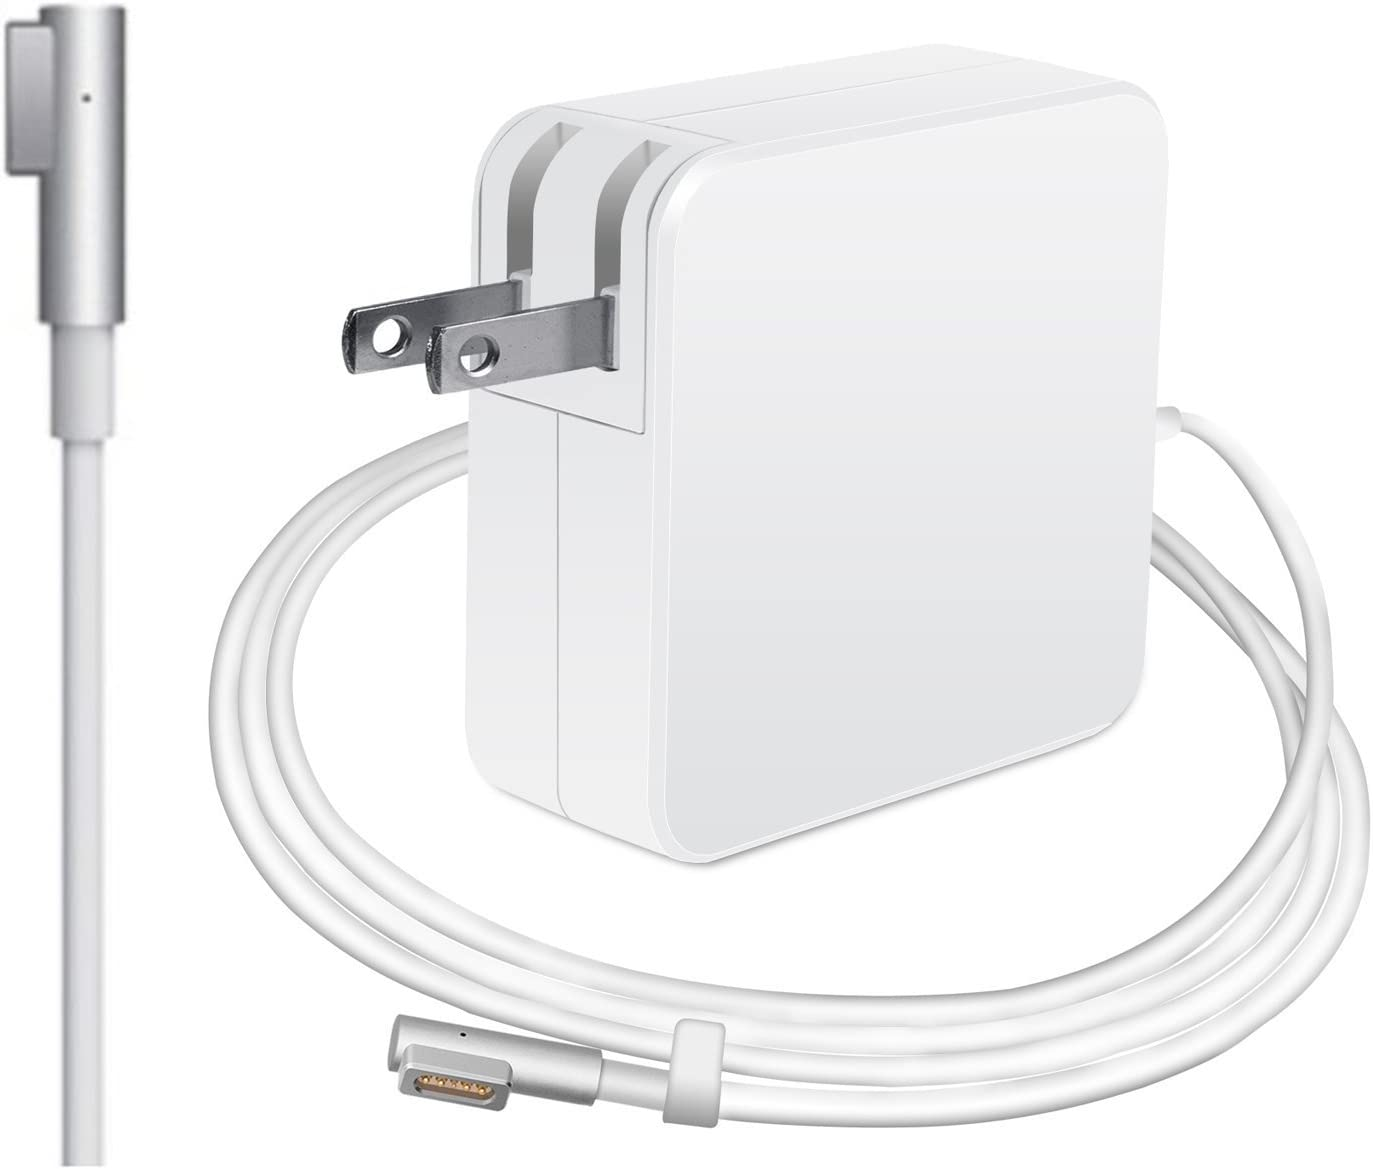 "MacBook Pro Charger,Replacement 60w Ac Power Supply Laptop Computer Chargers & Adapters Compatible for Apple MacBook 13"" A1181 A1278 A1184 A1330 A1342 A1344 (White2)"